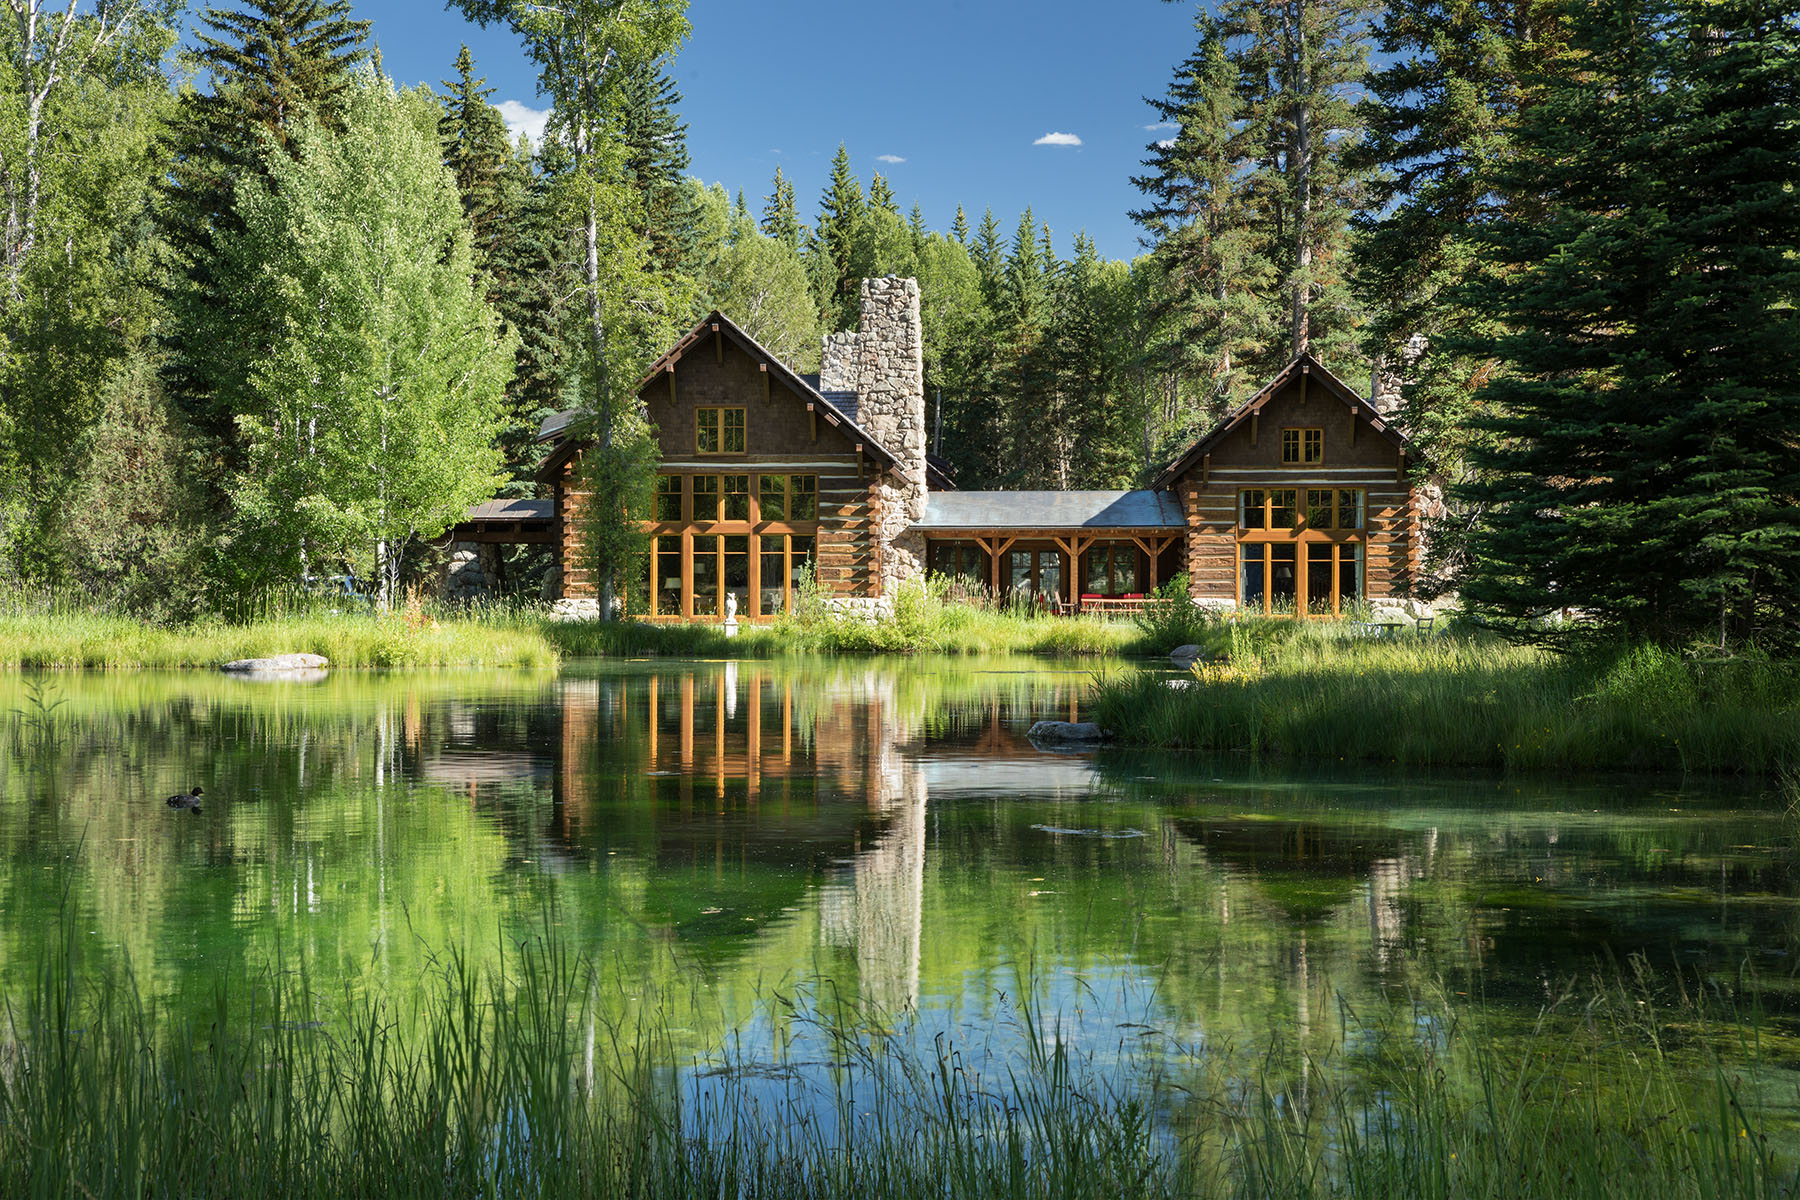 Single Family Homes for Active at Architectural Masterpiece in Ely Springs 1275 S Ely Springs Road Jackson, Wyoming 83001 United States